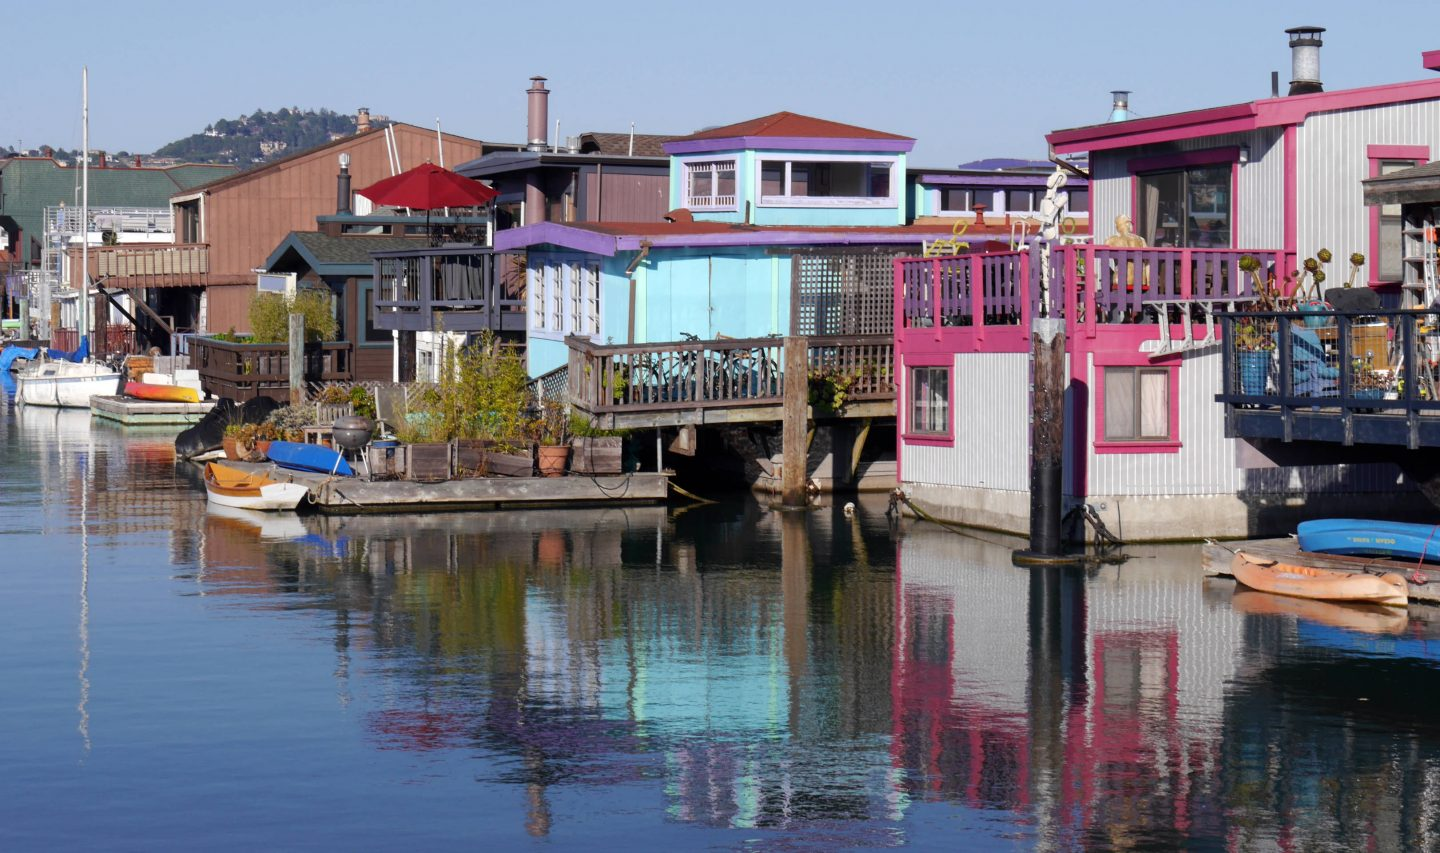 Sausalito – House Boats in front of the Gates to San Francisco